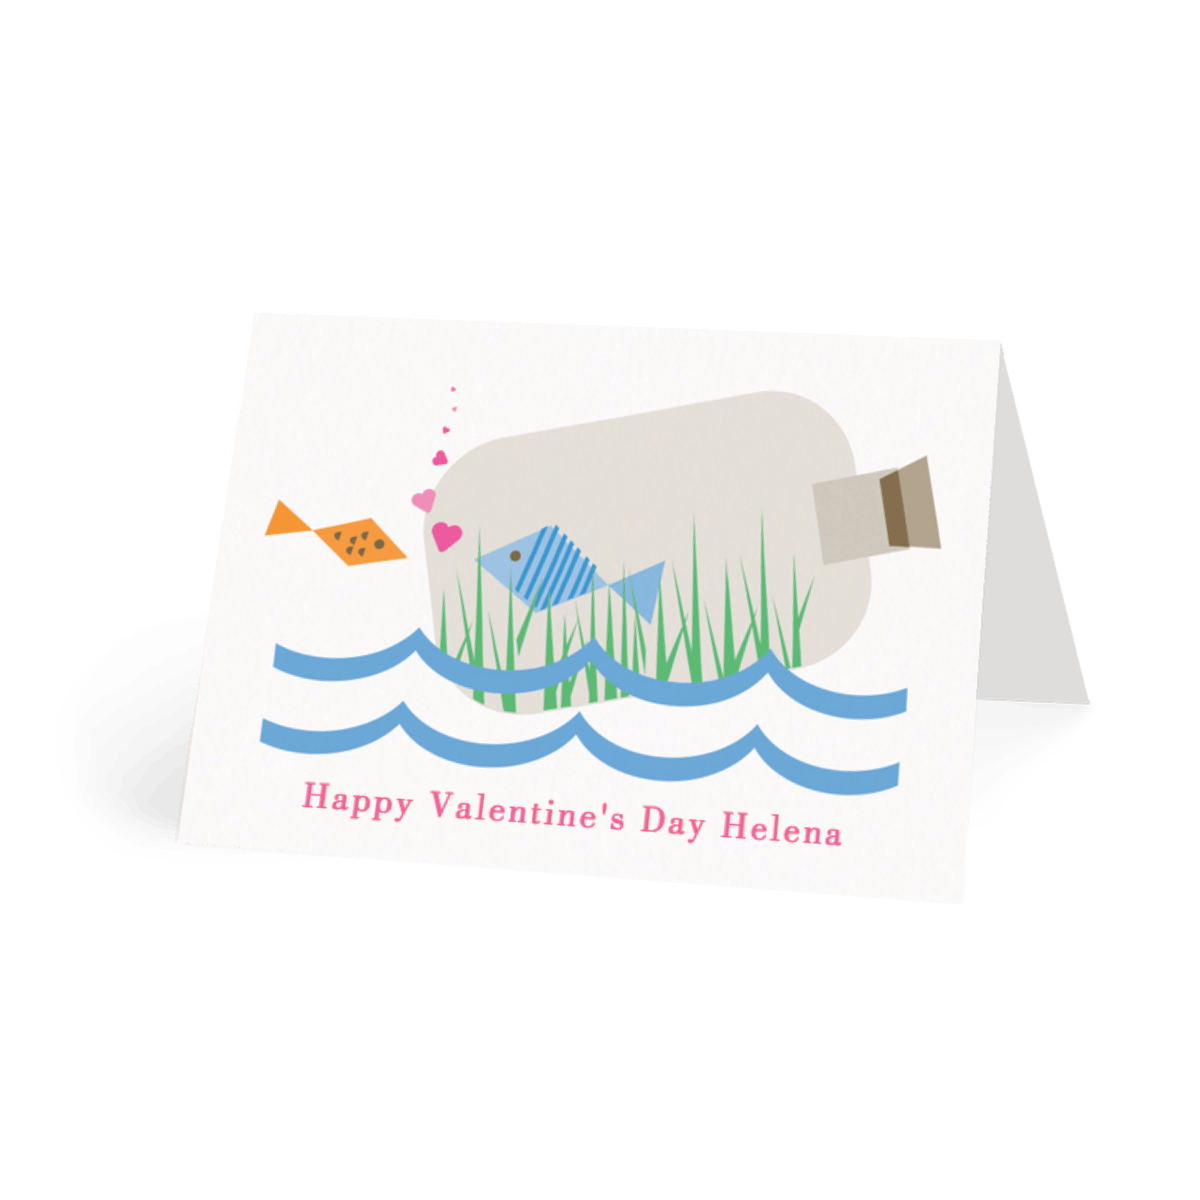 Https%3a%2f%2fwww.papier.com%2fproduct image%2f4026%2f14%2flove in a bottle 1068 avant 1453911102.png?ixlib=rb 1.1